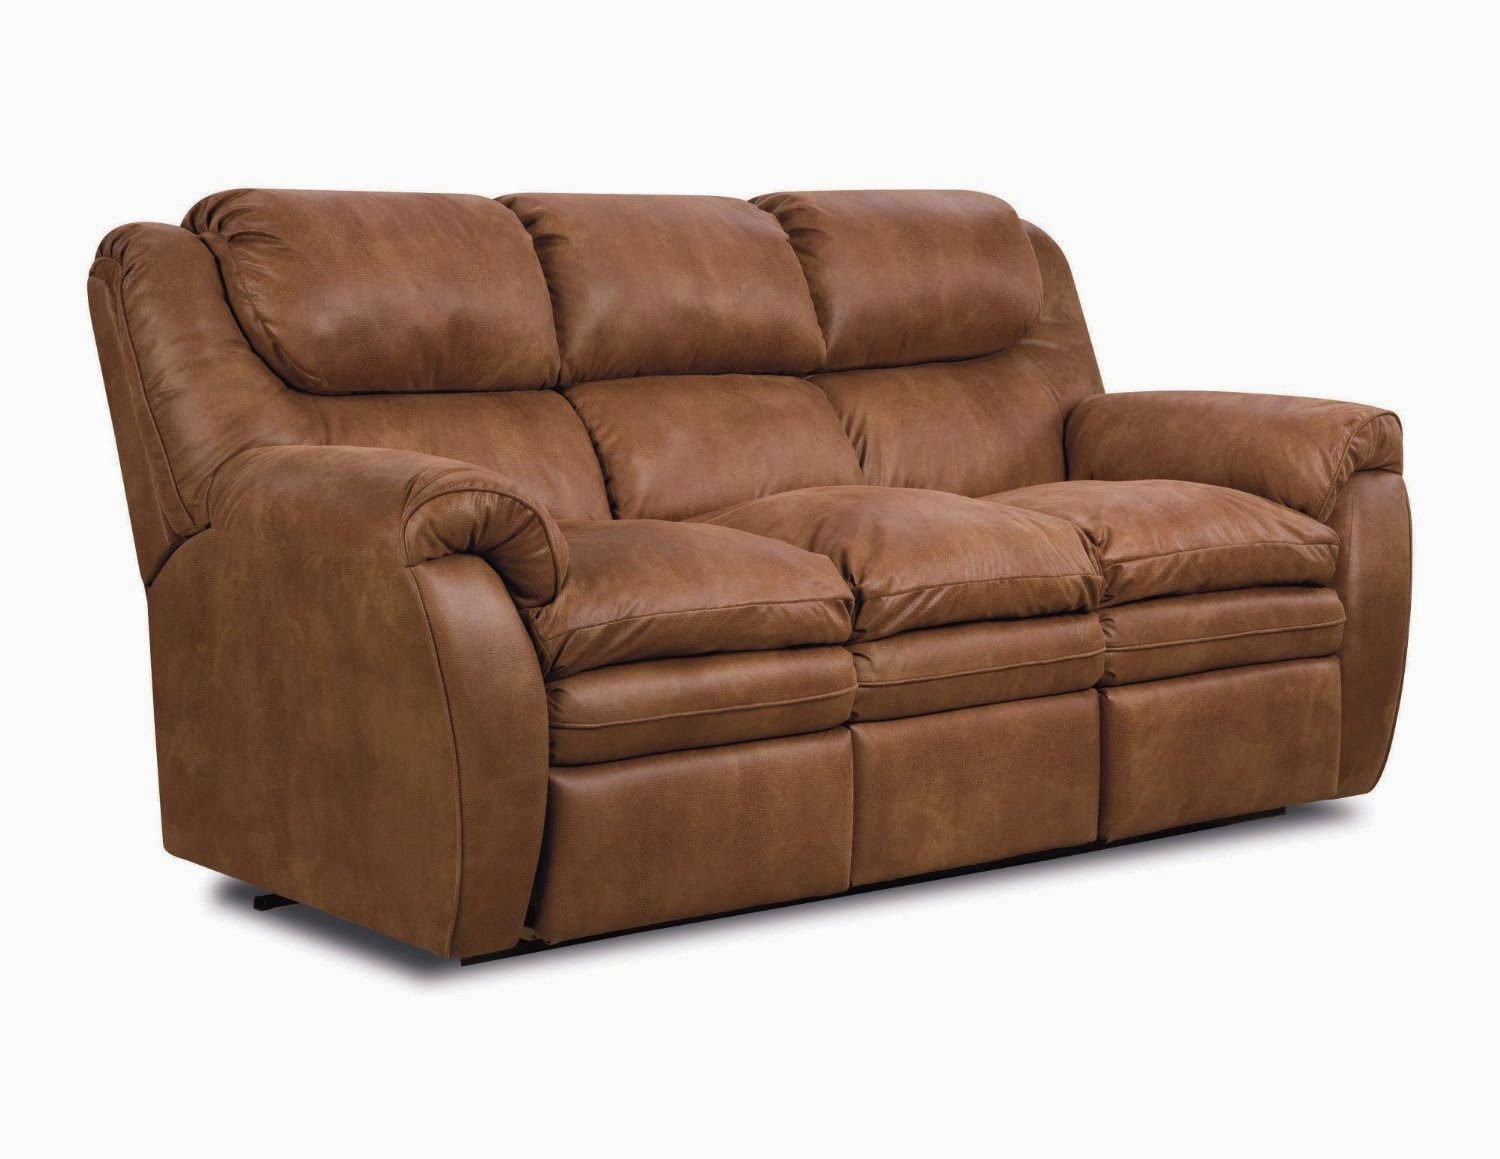 Cheap reclining sofas sale lane double reclining sofa with storage drawer Storage loveseat